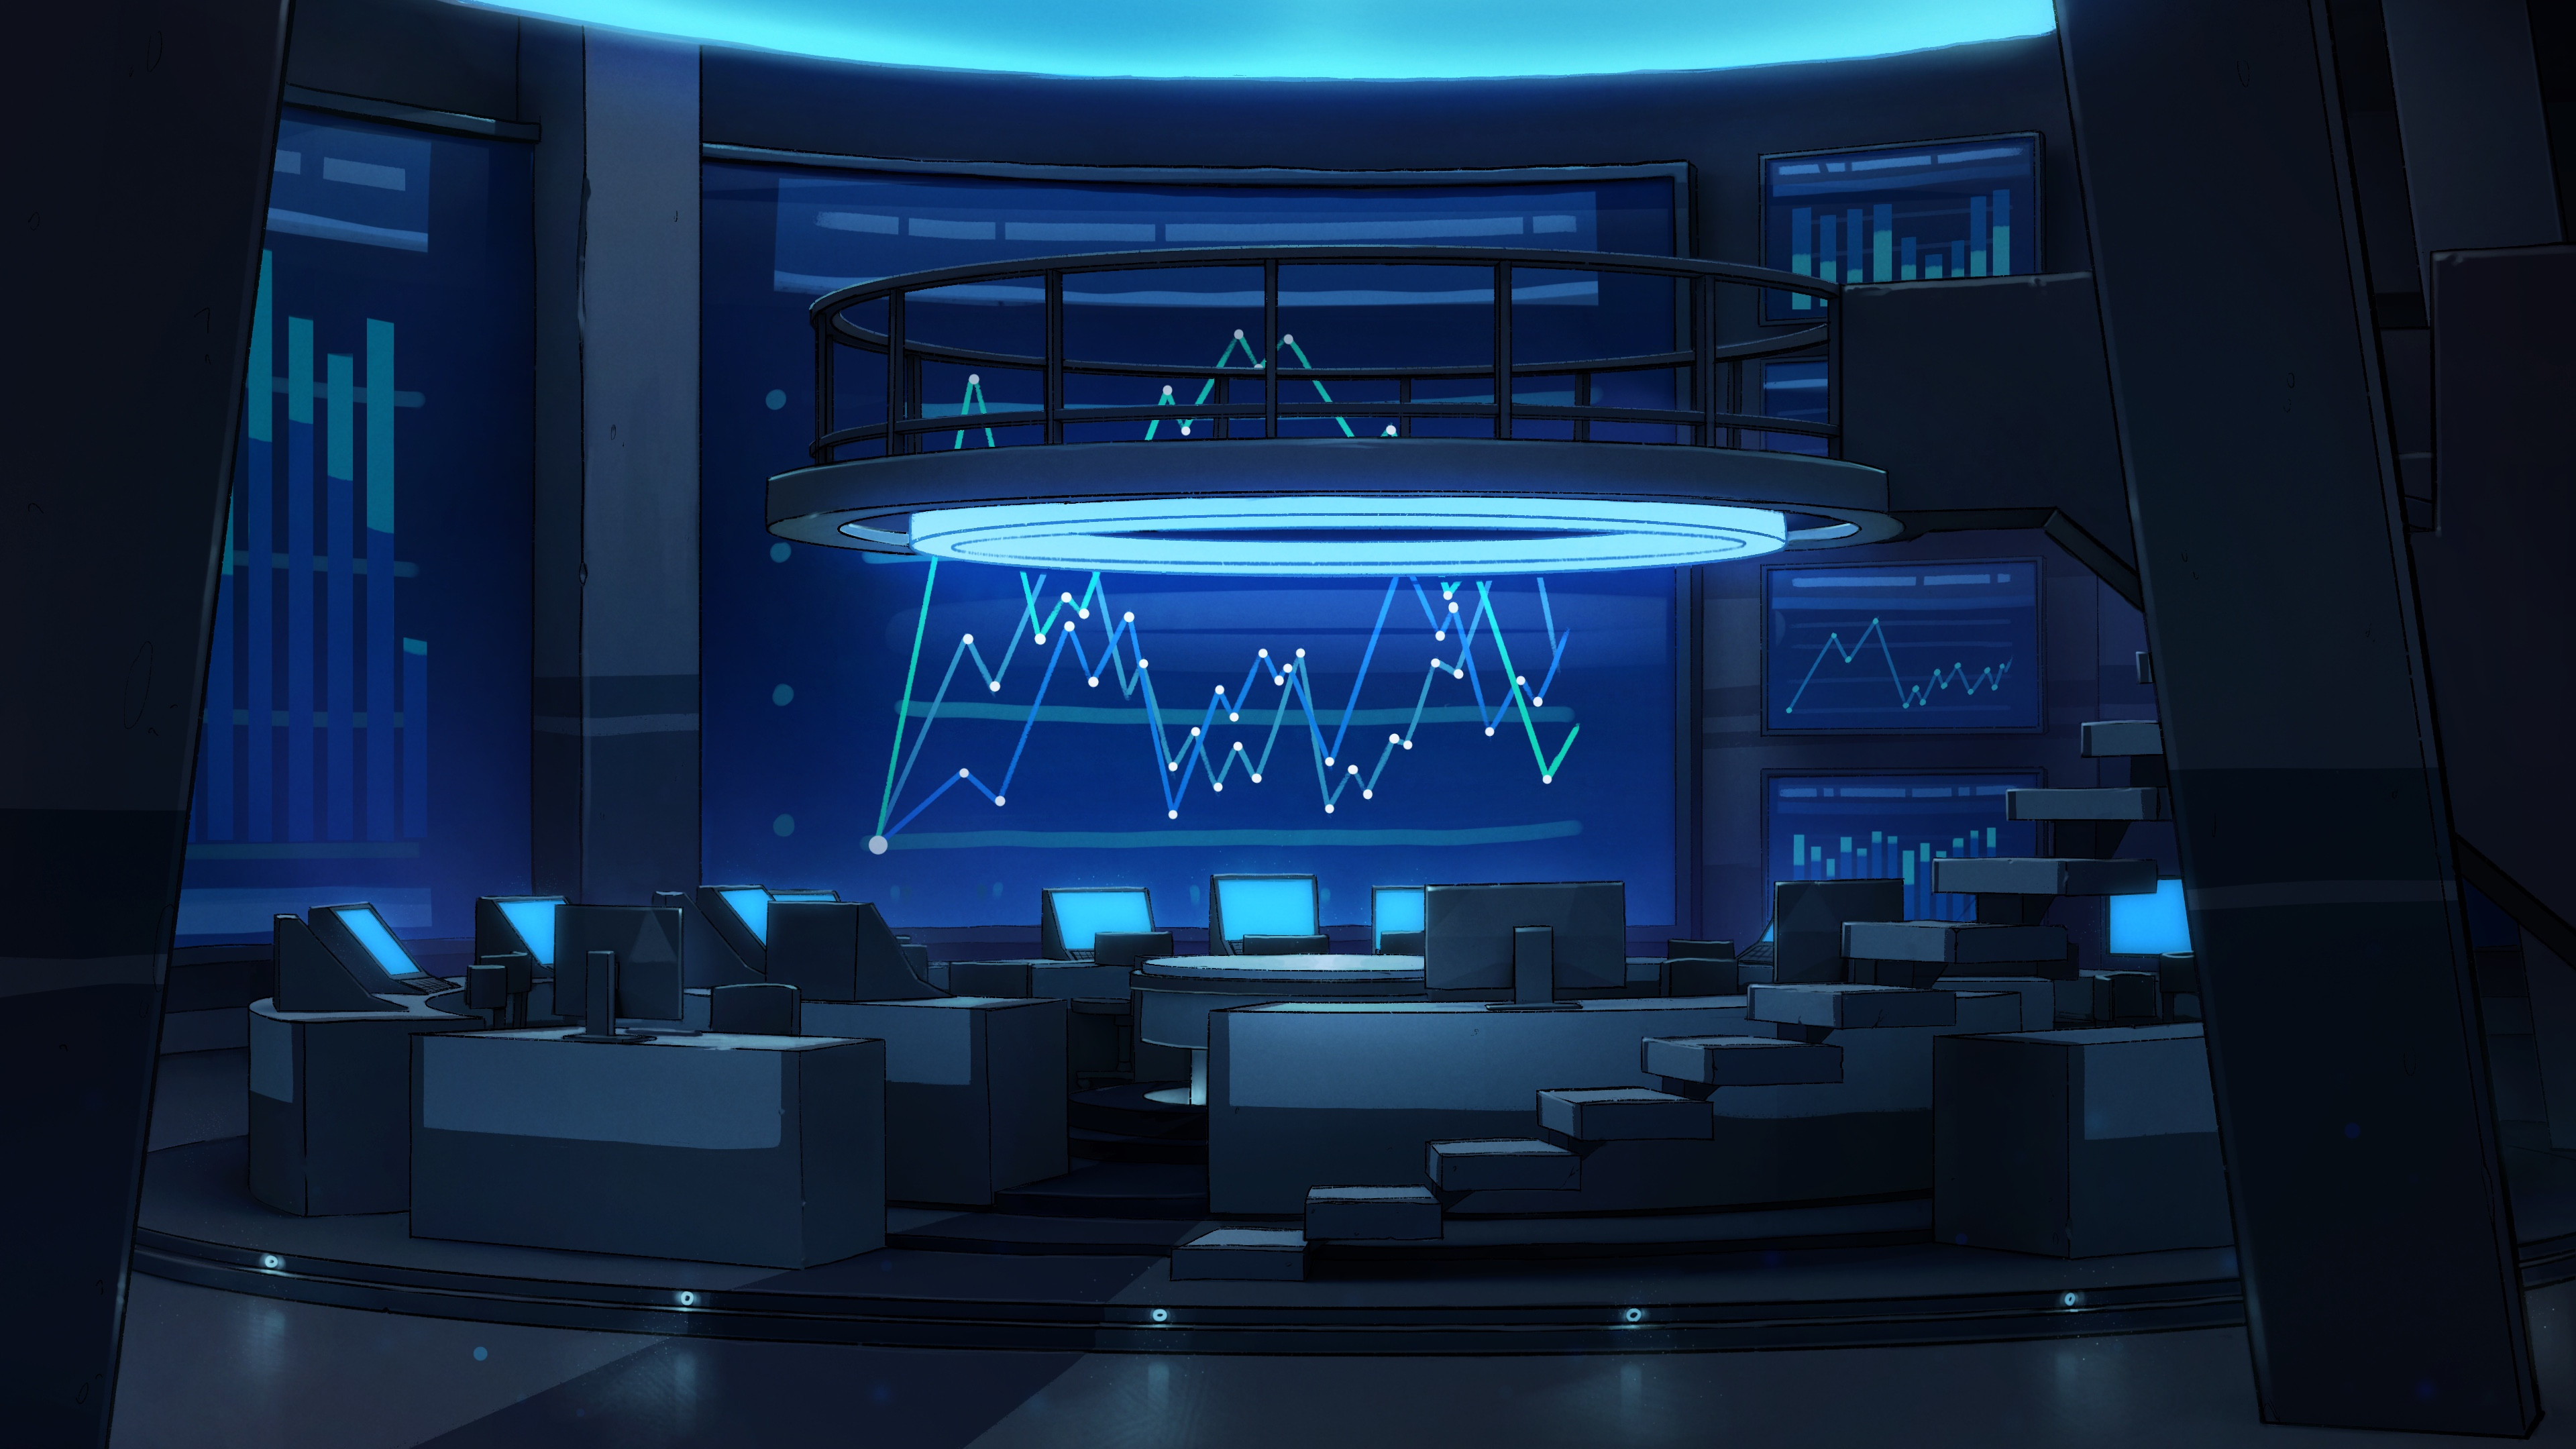 Control room - final background